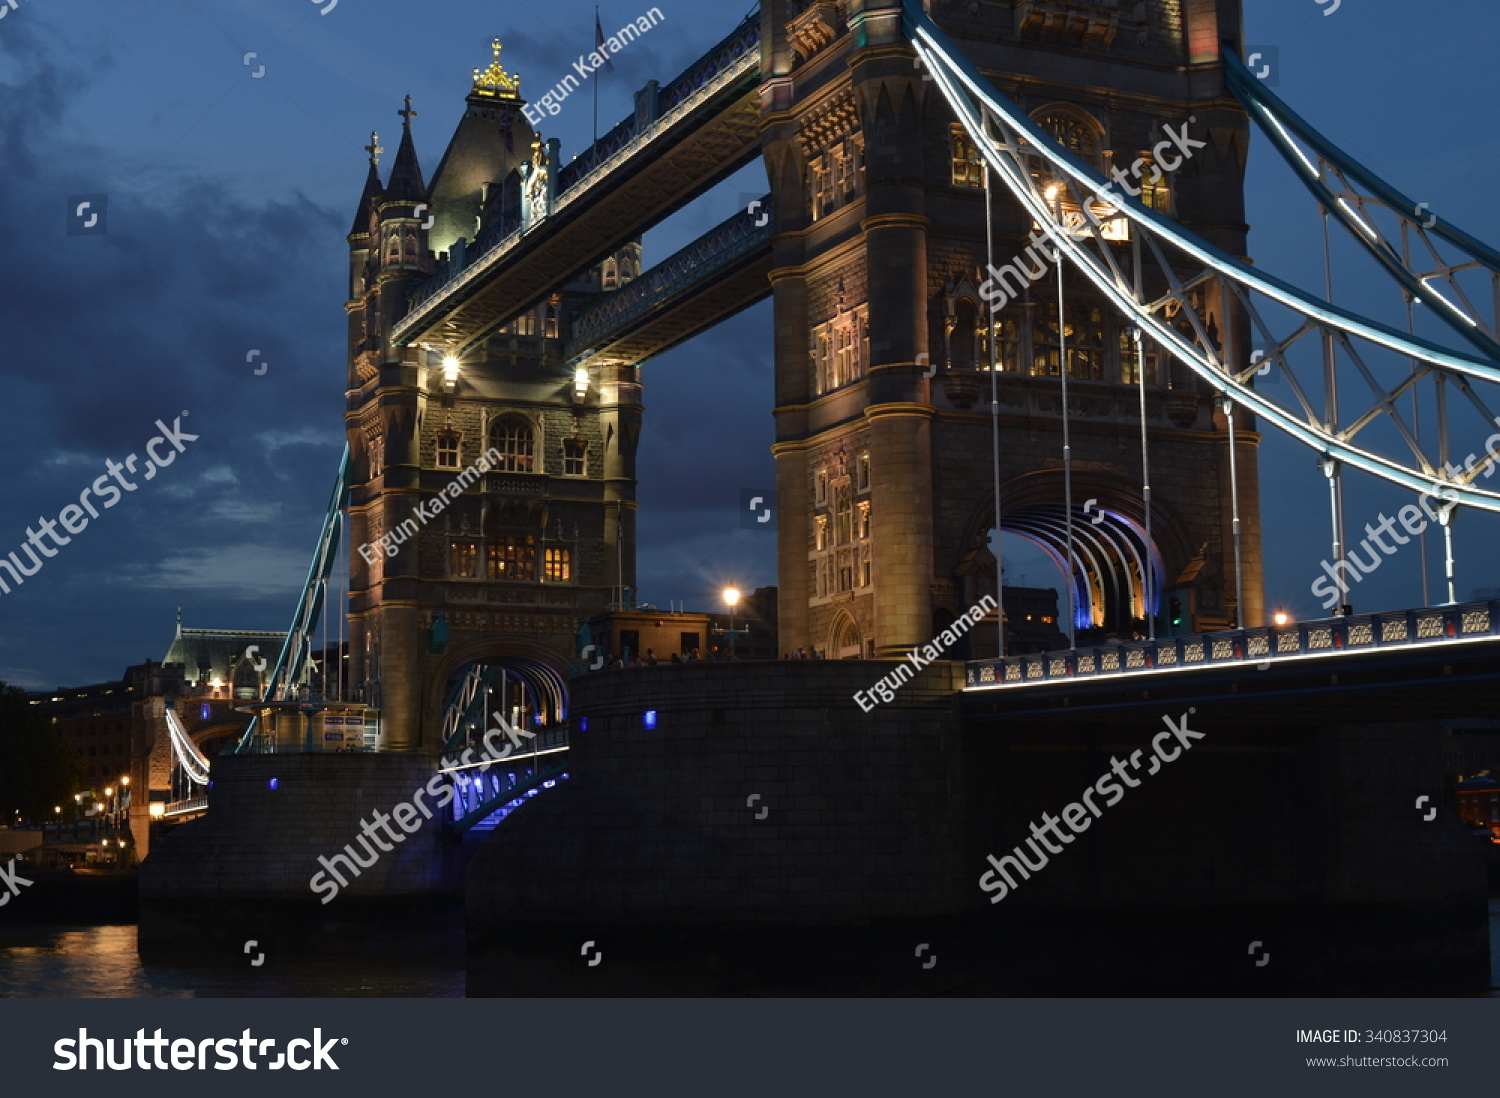 Side of Tower Bridge at night